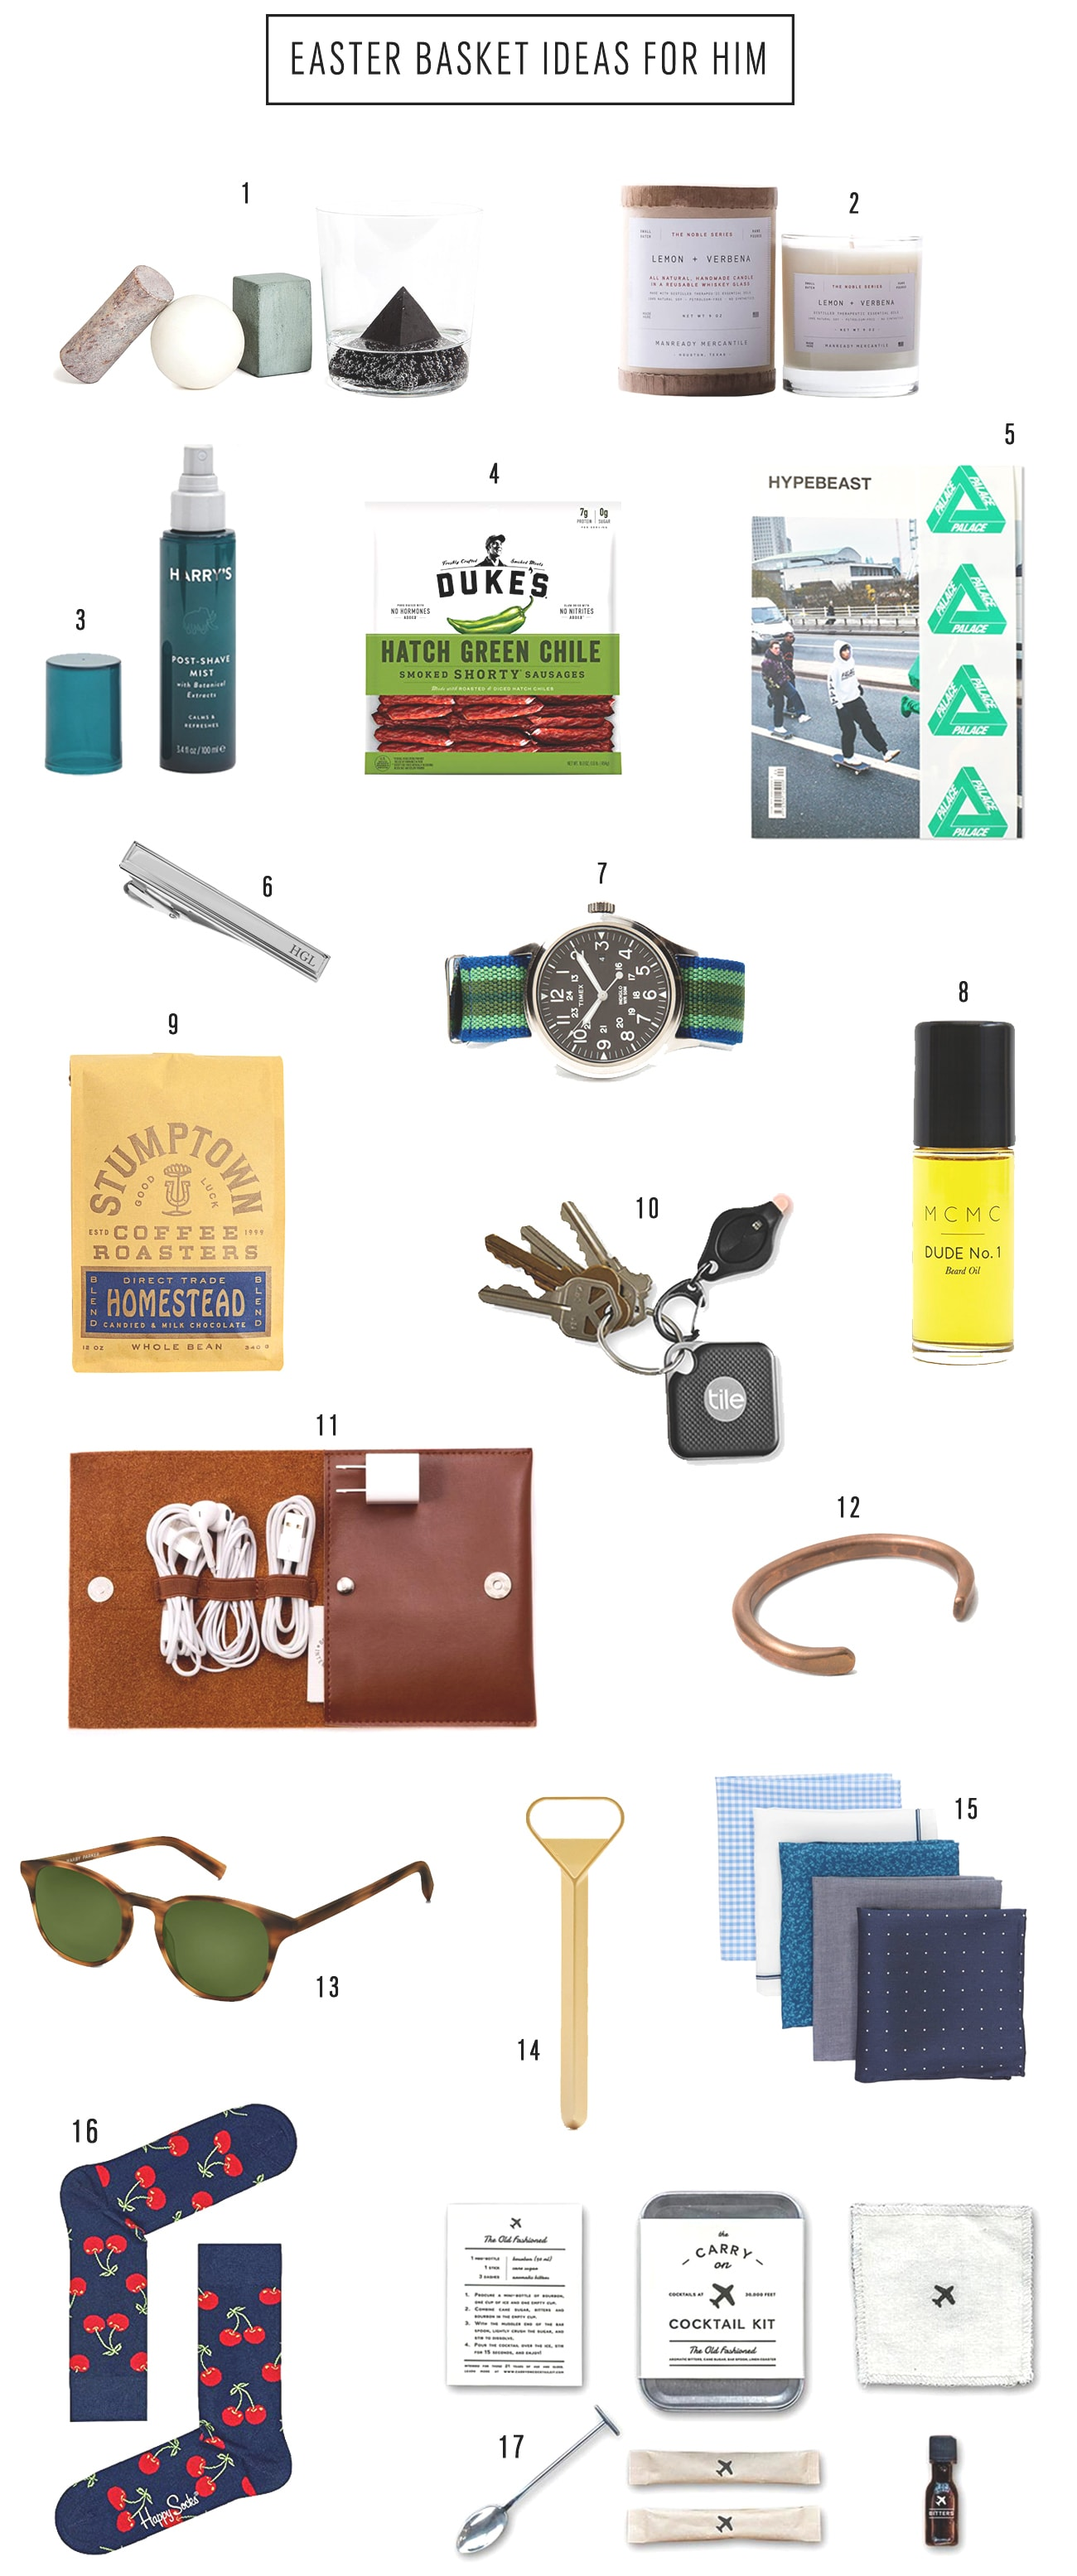 Easter Basket Ideas For Him by top Houston lifestyle blogger Ashley Rose of Sugar & Cloth